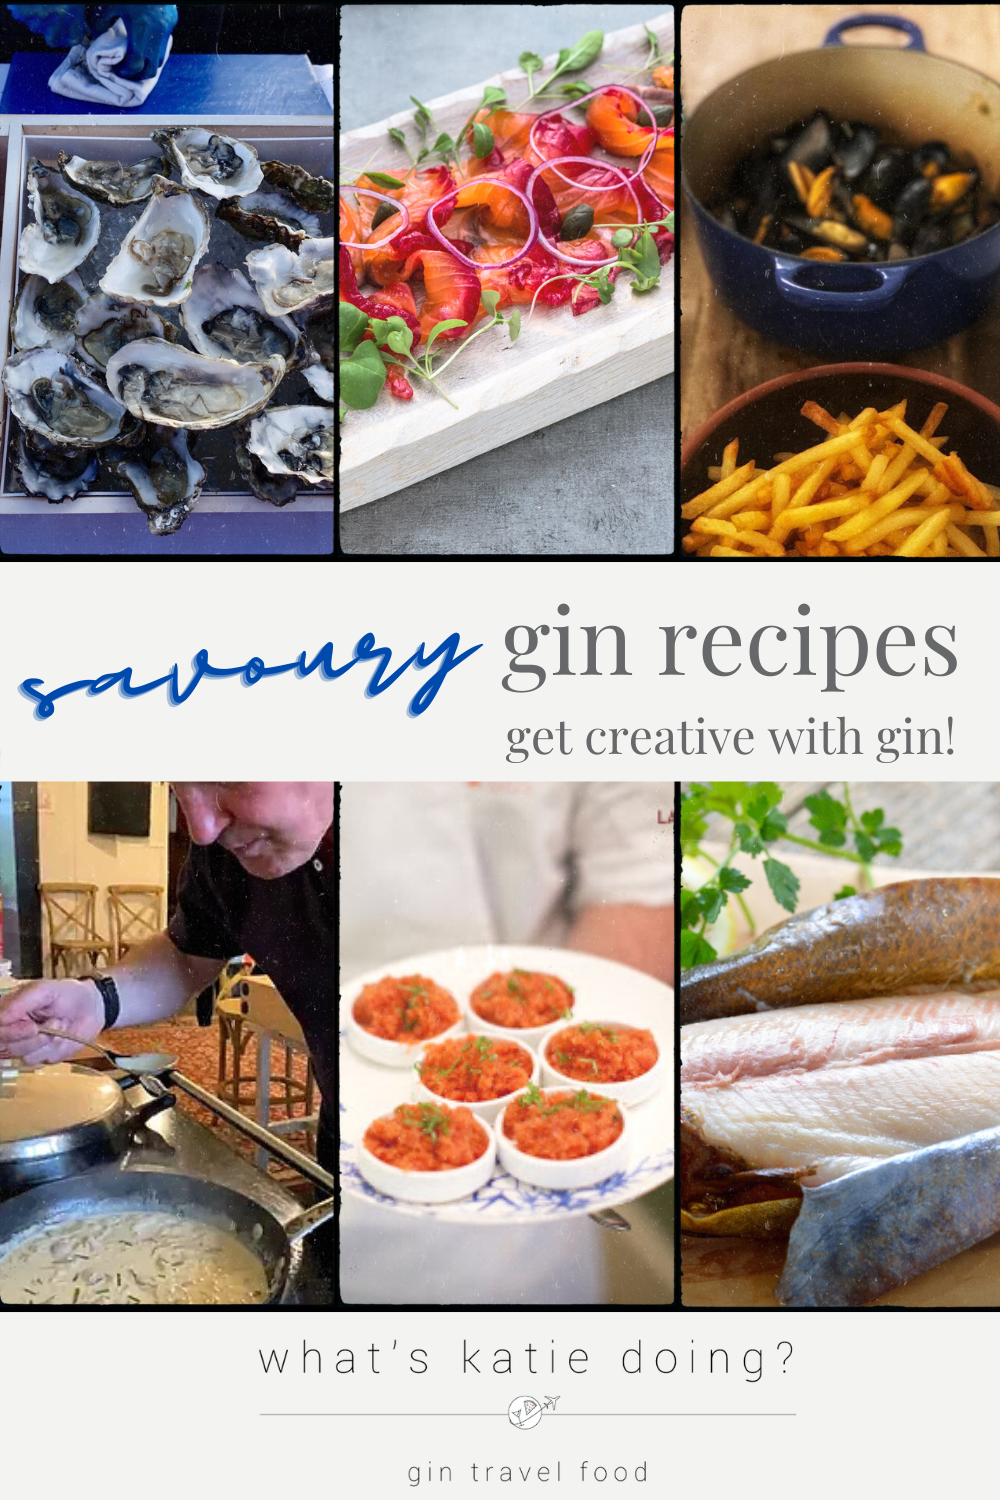 Cooking with gin: savoury edition - get creative cooking with gin